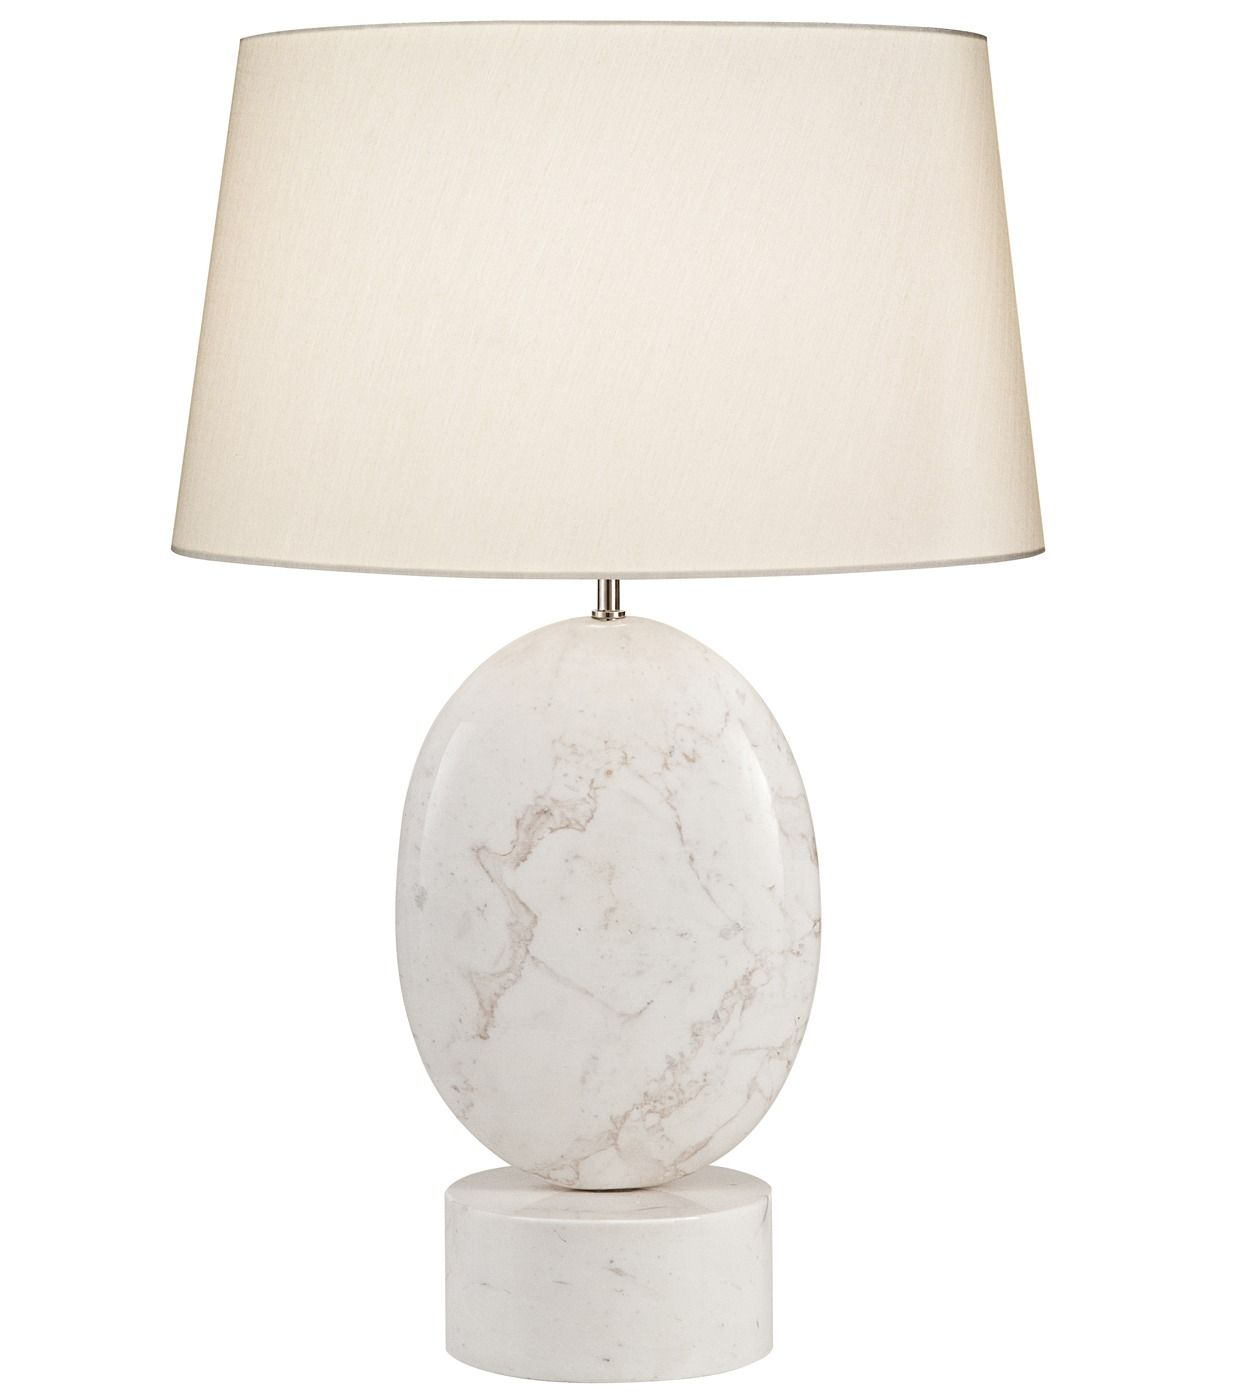 Fall 2016 trend marble white marble table lamps table lamp fall 2016 trend marble white marble table lamps table lamp fine art lamps geotapseo Gallery